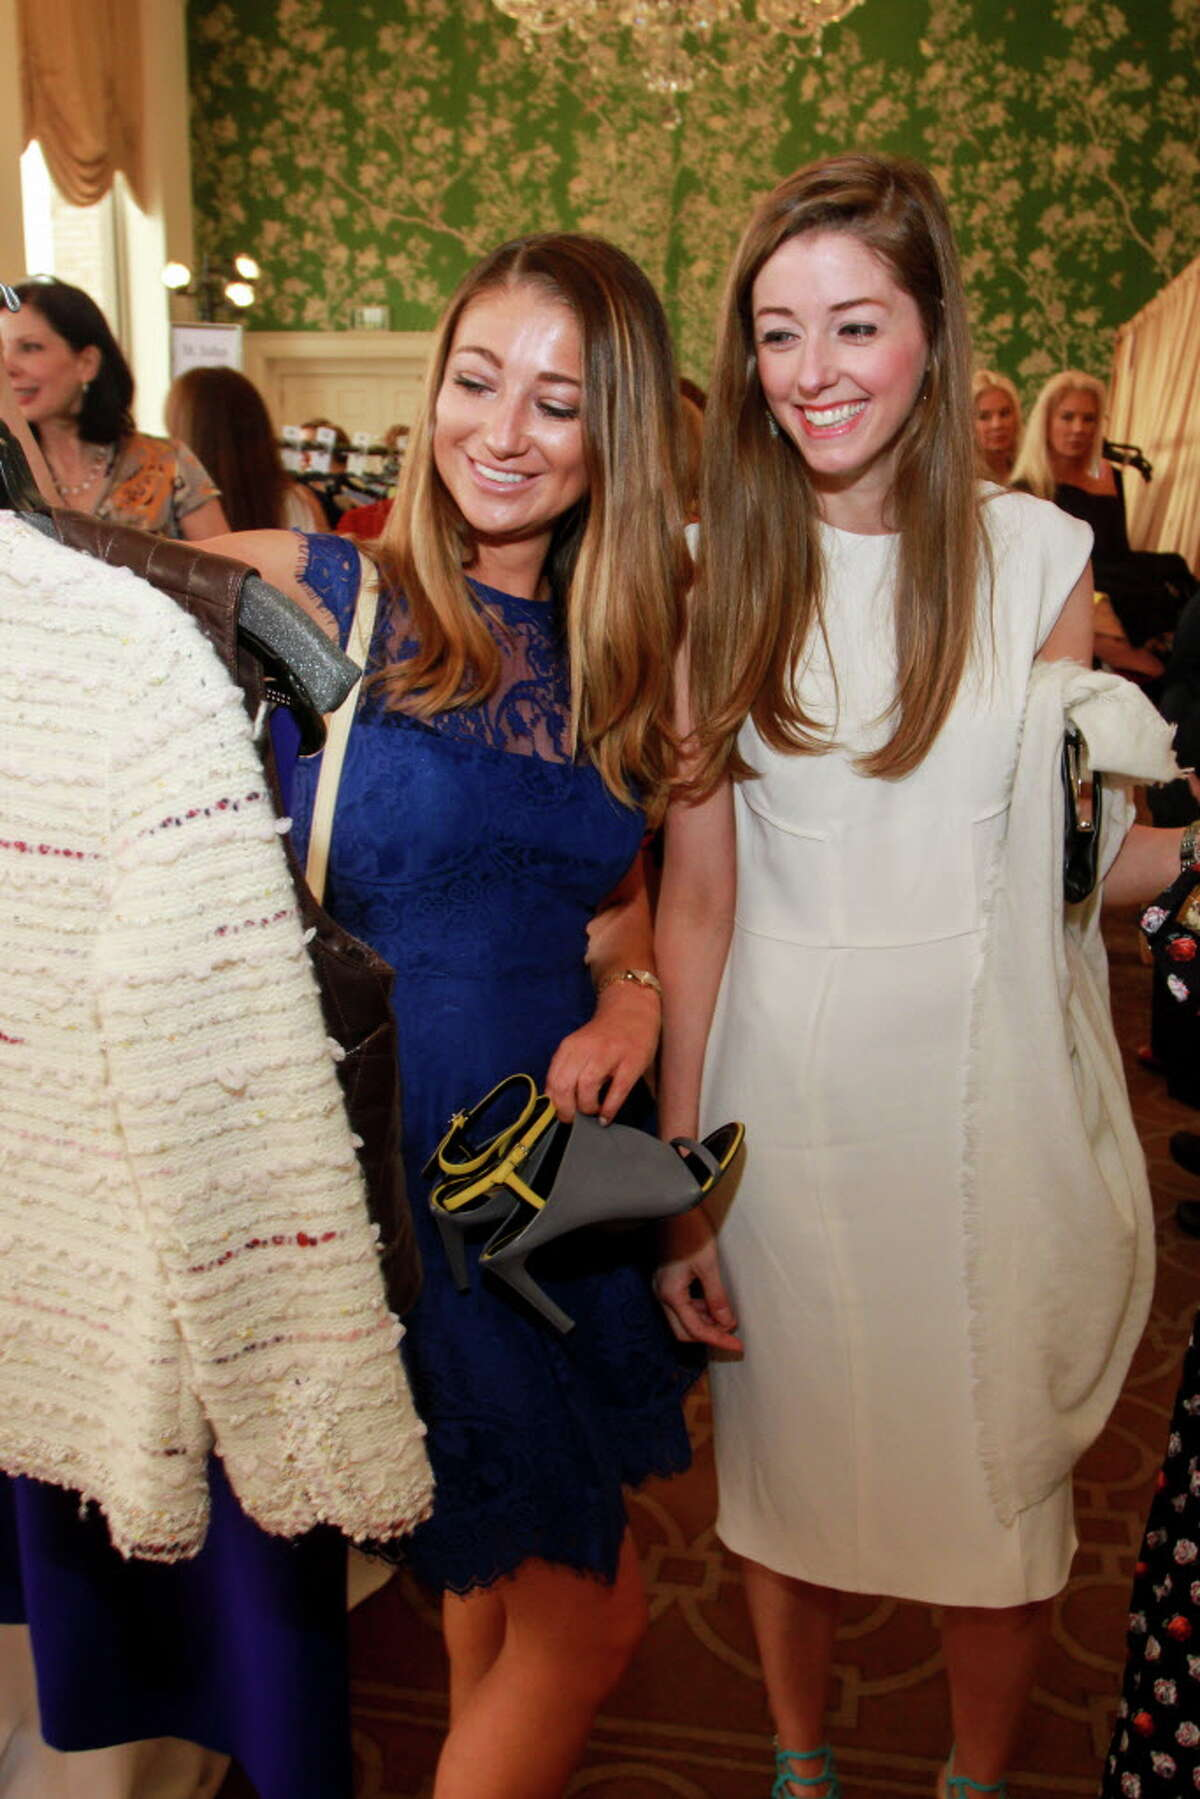 Piper Hatfield, left, and Lauren McEvoy shopping at the annual Chic Boutique and runway fashion show luncheon benefiting the Salvation Army. (For the Chronicle/Gary Fountain, April 12, 2016)